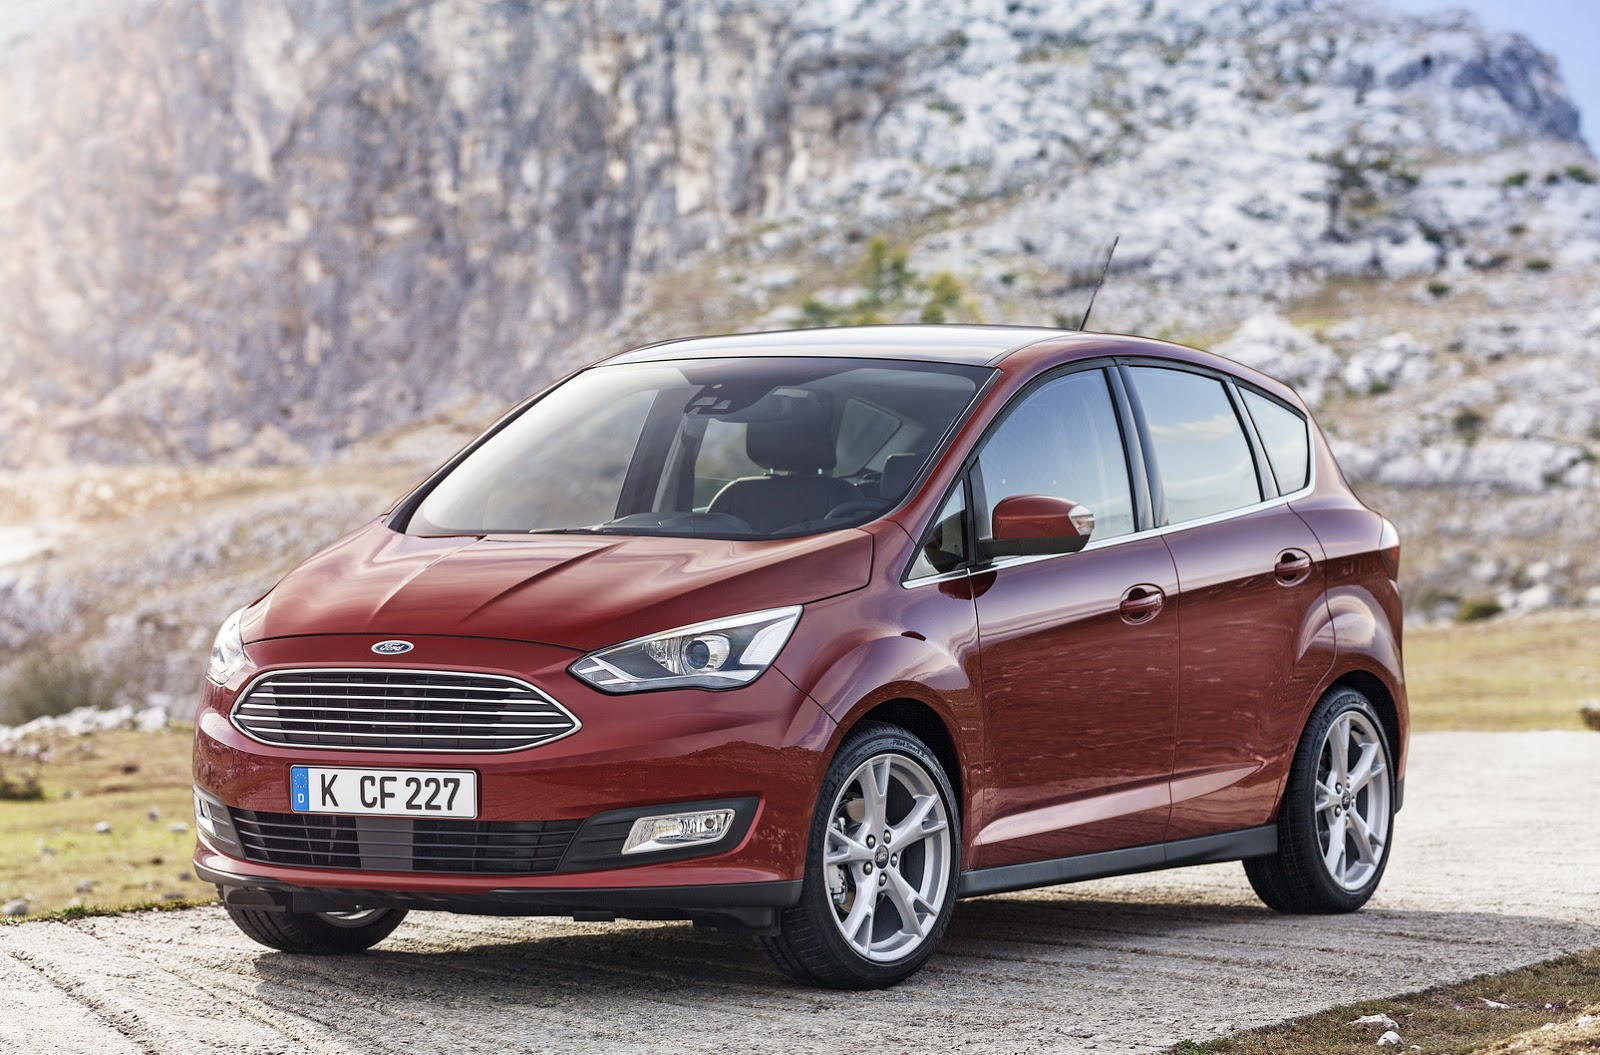 2015 ford c max facelift family revealed in 43 photos carscoops. Black Bedroom Furniture Sets. Home Design Ideas